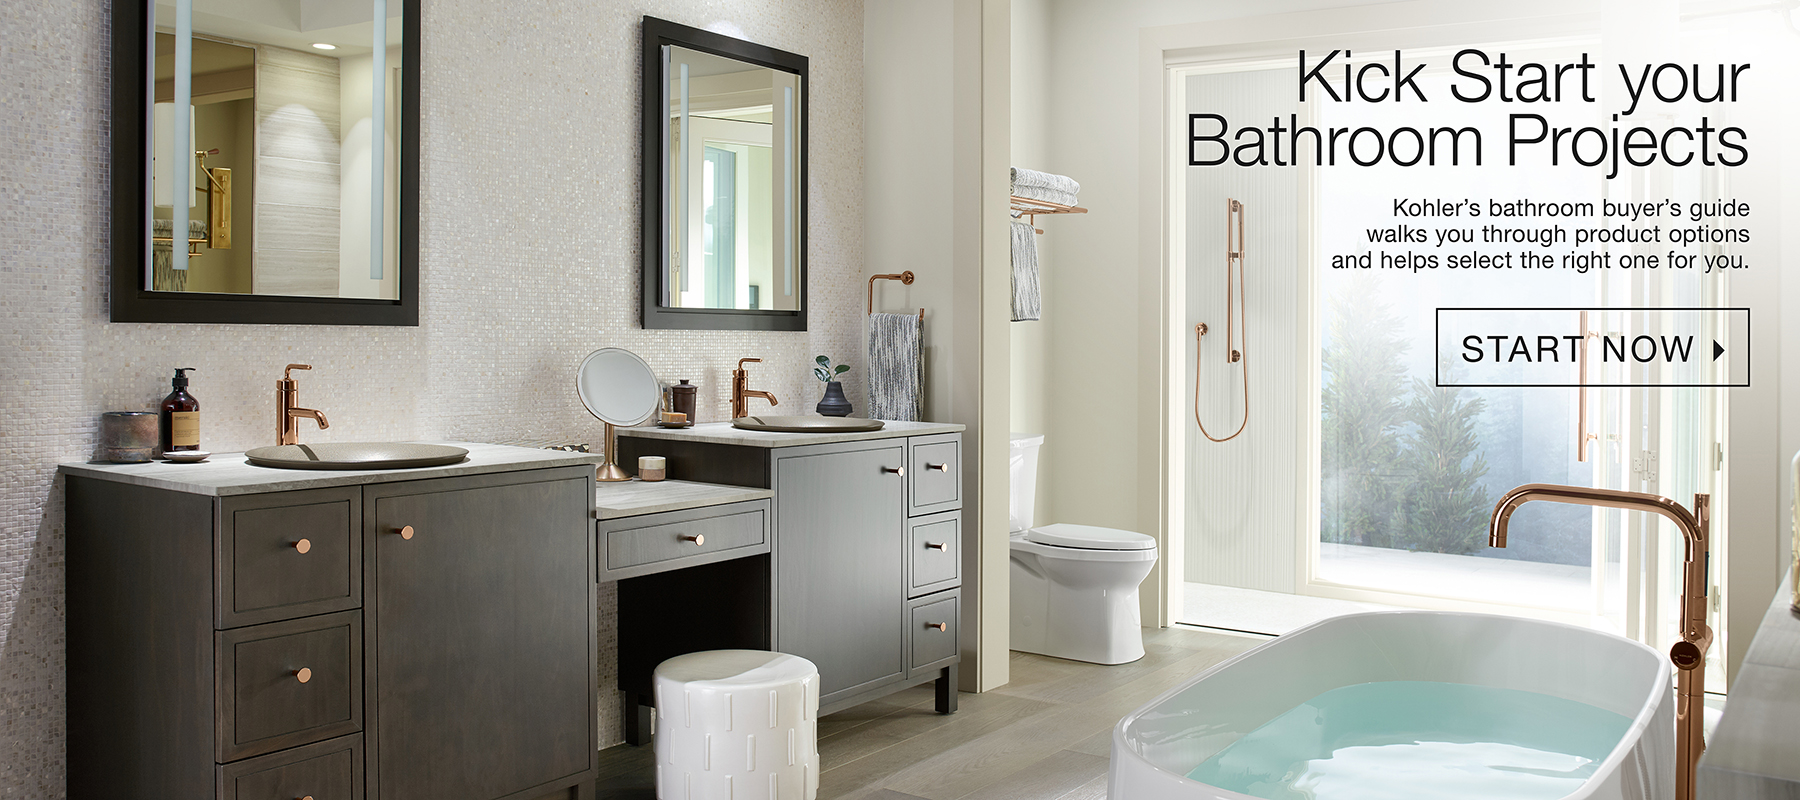 Kick Start Your Bathroom Projects